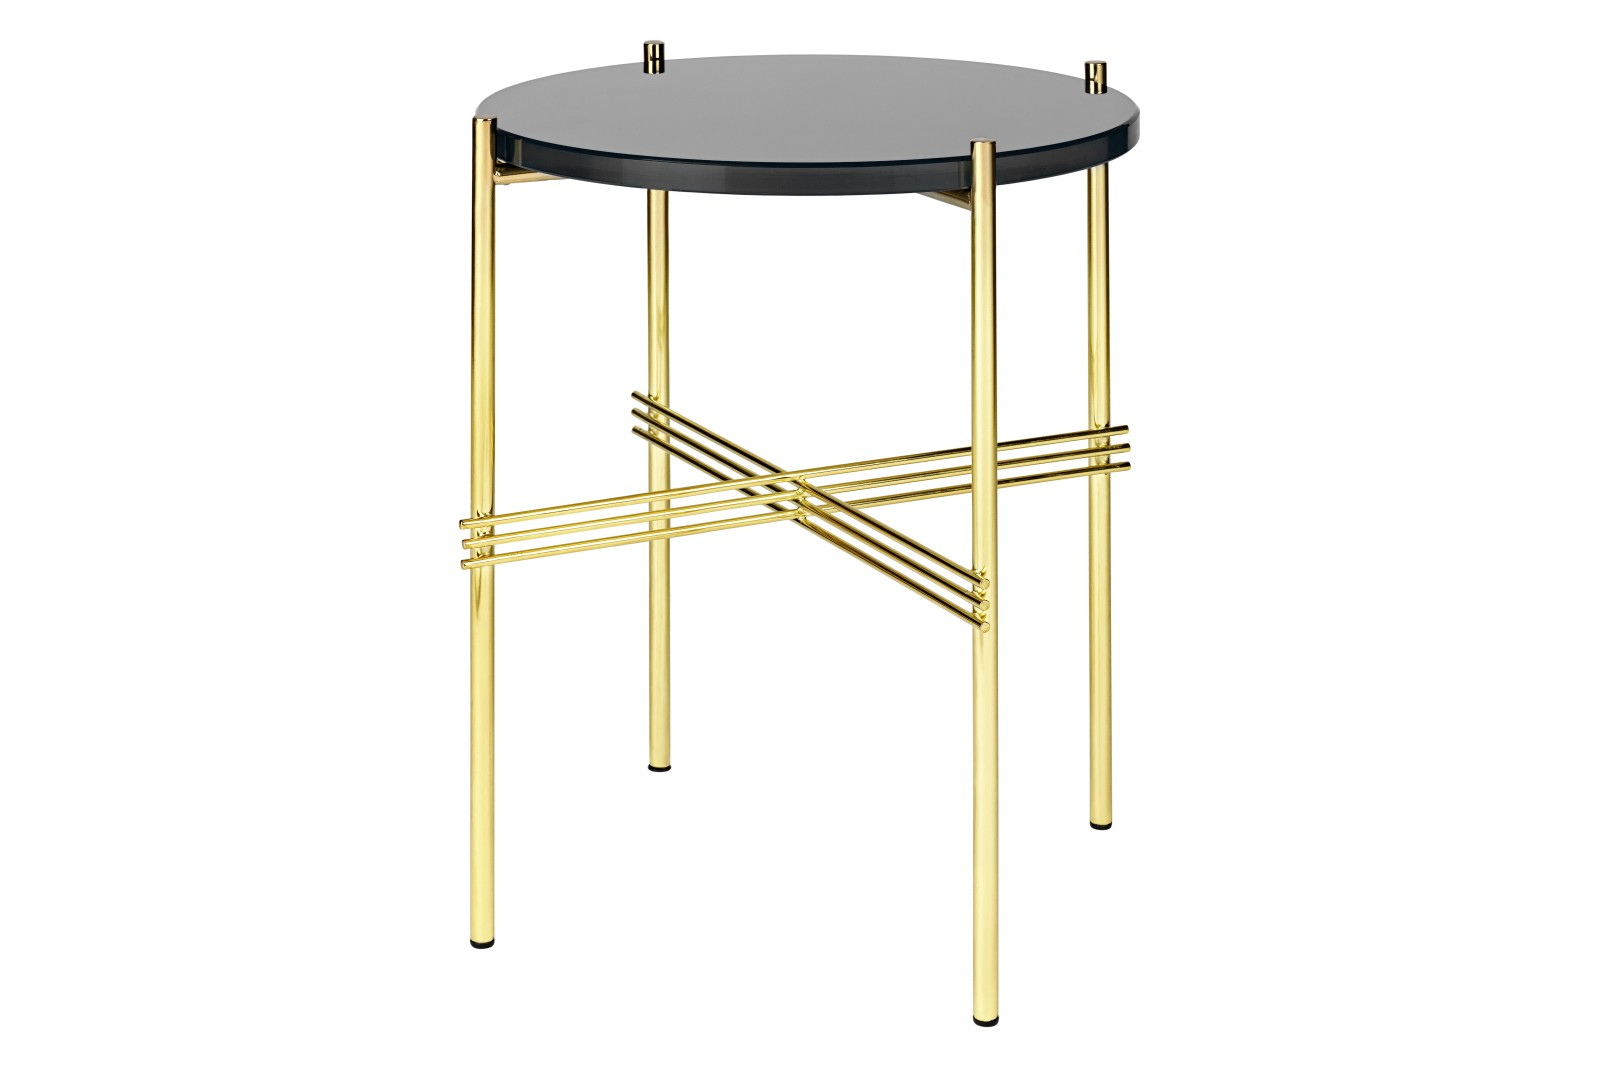 TS Round Side Table with Glass Top Graphite Black Top and Brass Frame, 0 40 x 51 cm